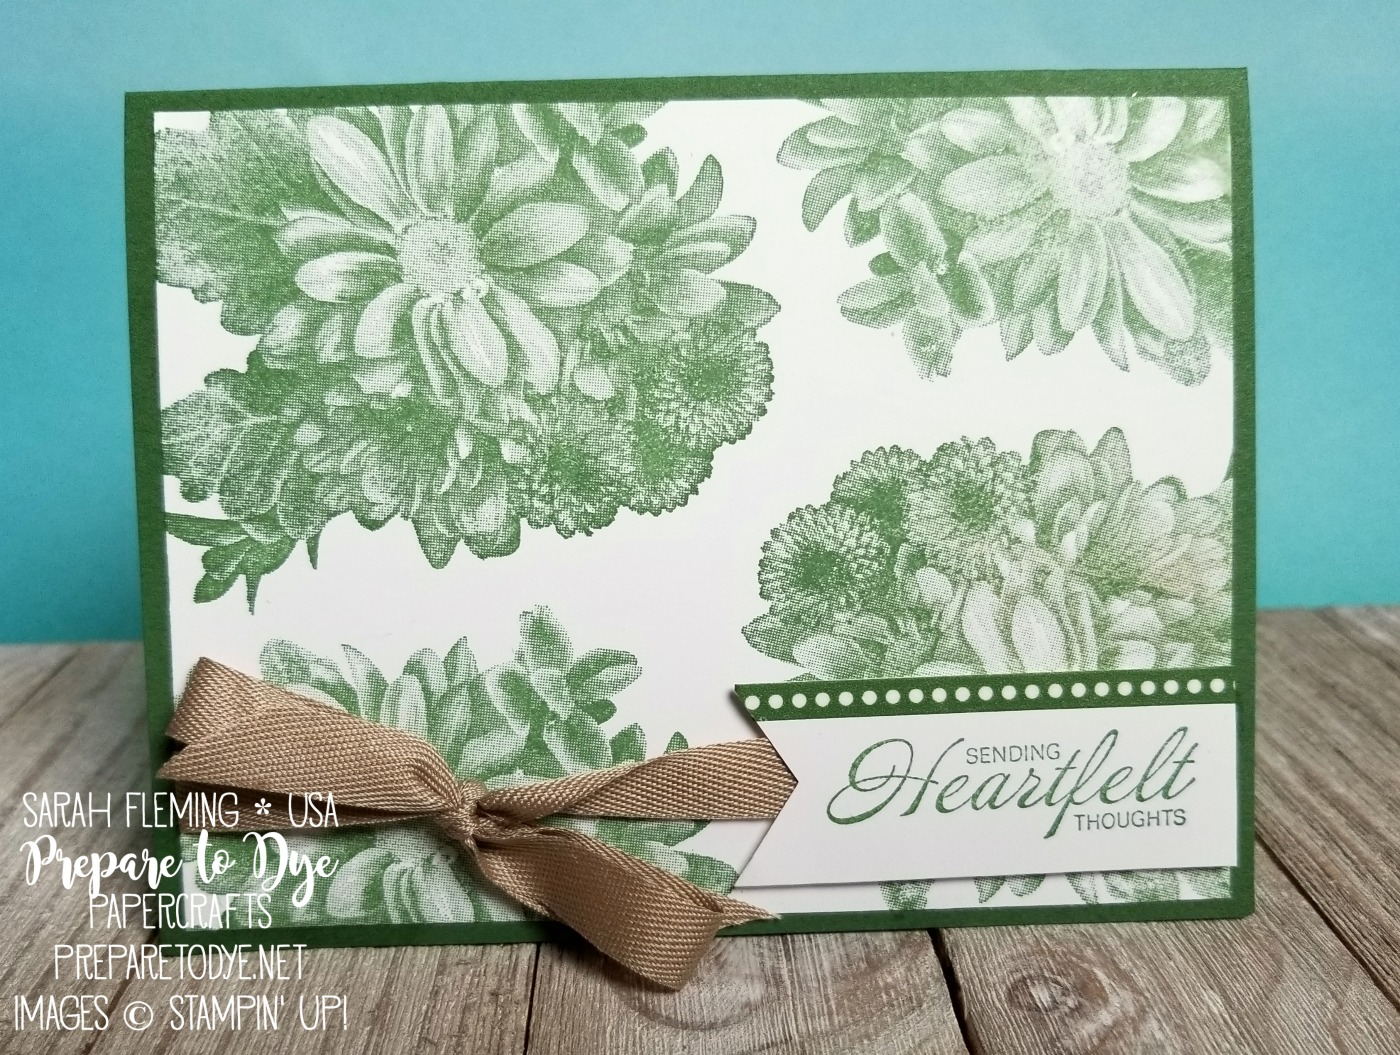 Stampin' Up! Heartfelt Blooms - Sale-A-Bration freebie with $50 purchase - Basics Pack 2 washi tape, Crumb Cake Classic Weave Ribbon - handmade sympathy get well card - Sarah Fleming - Prepare to Dye Papercrafts